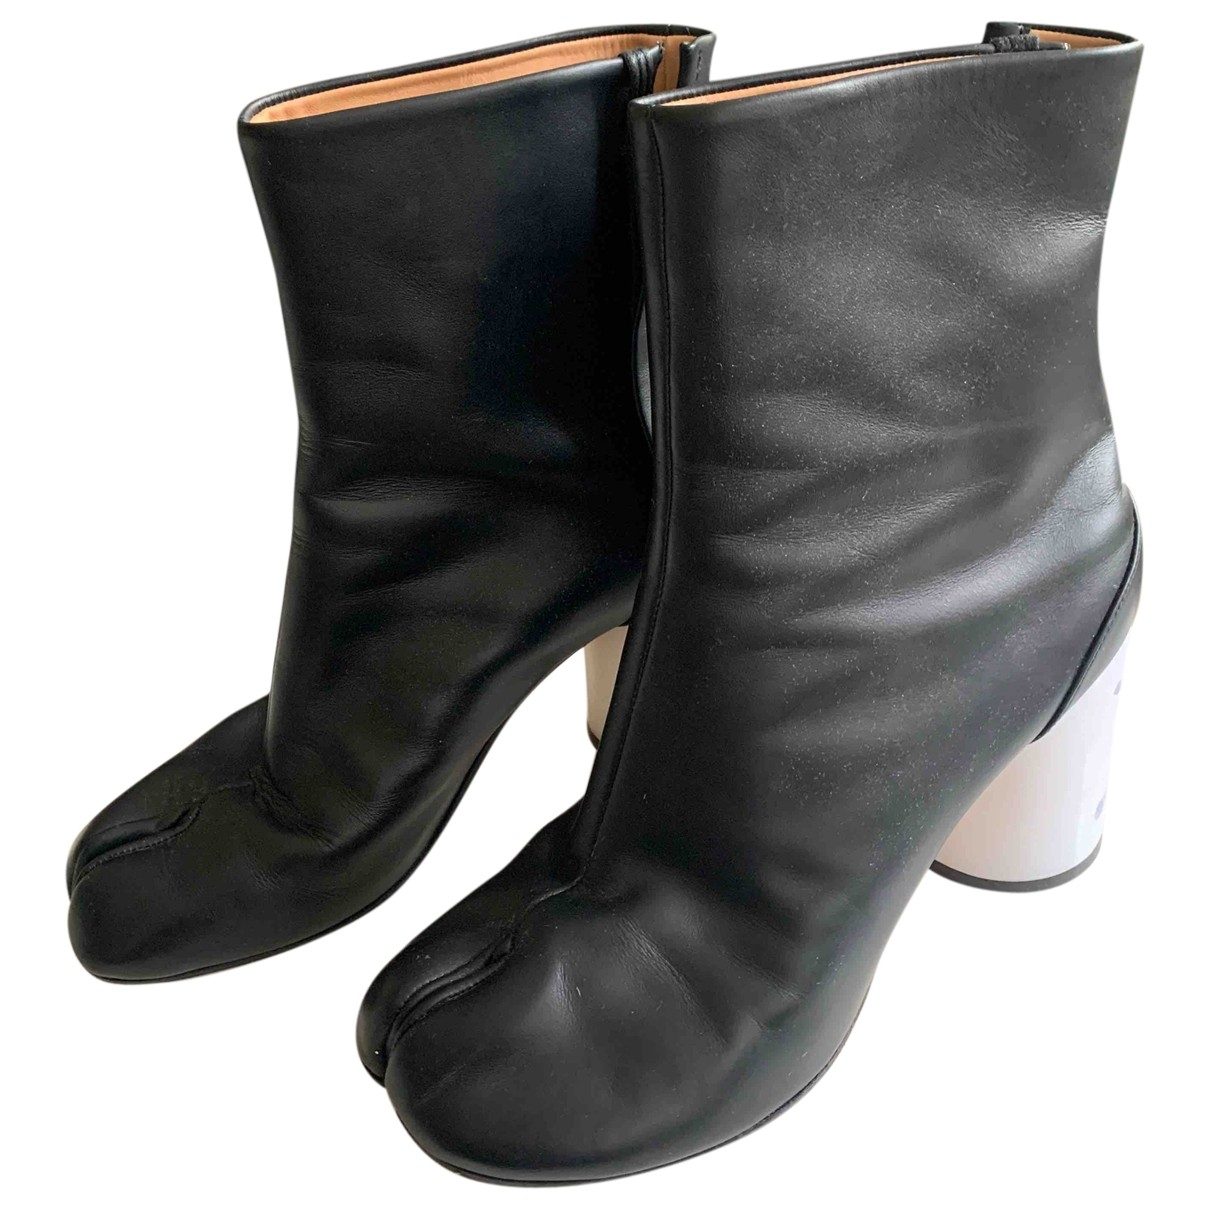 Maison Martin Margiela Tabi Black Leather Boots for Women 39 EU